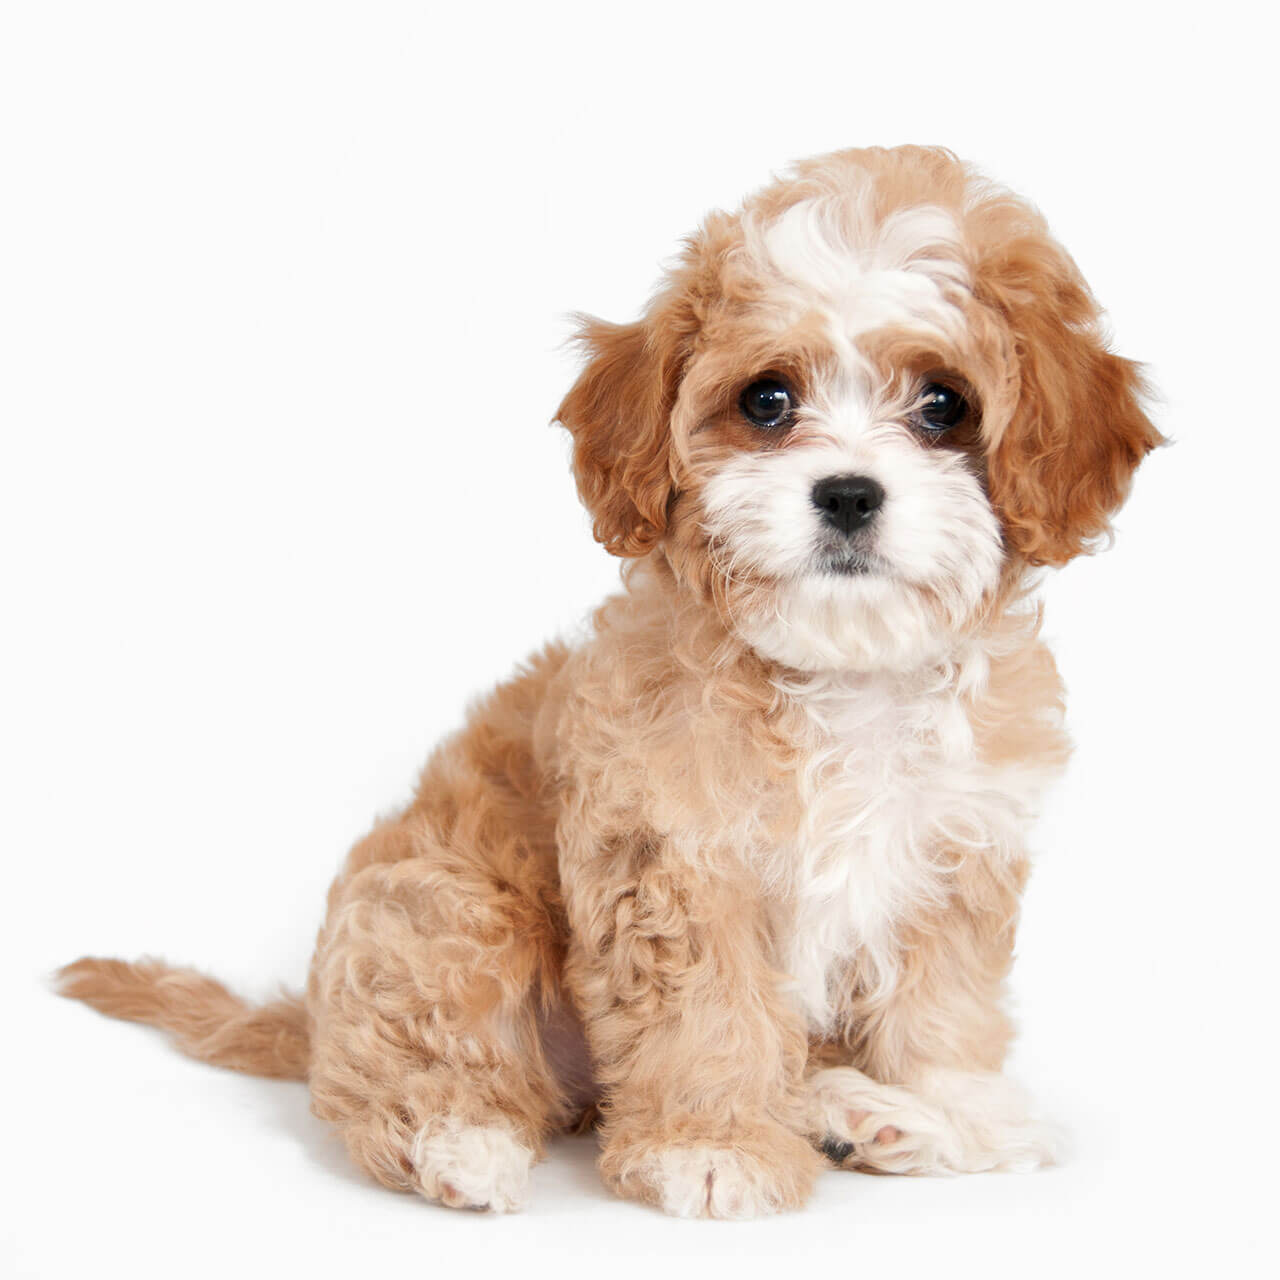 Cavapoo dog breed breed info pictures more cavapoo puppy sitting nvjuhfo Choice Image